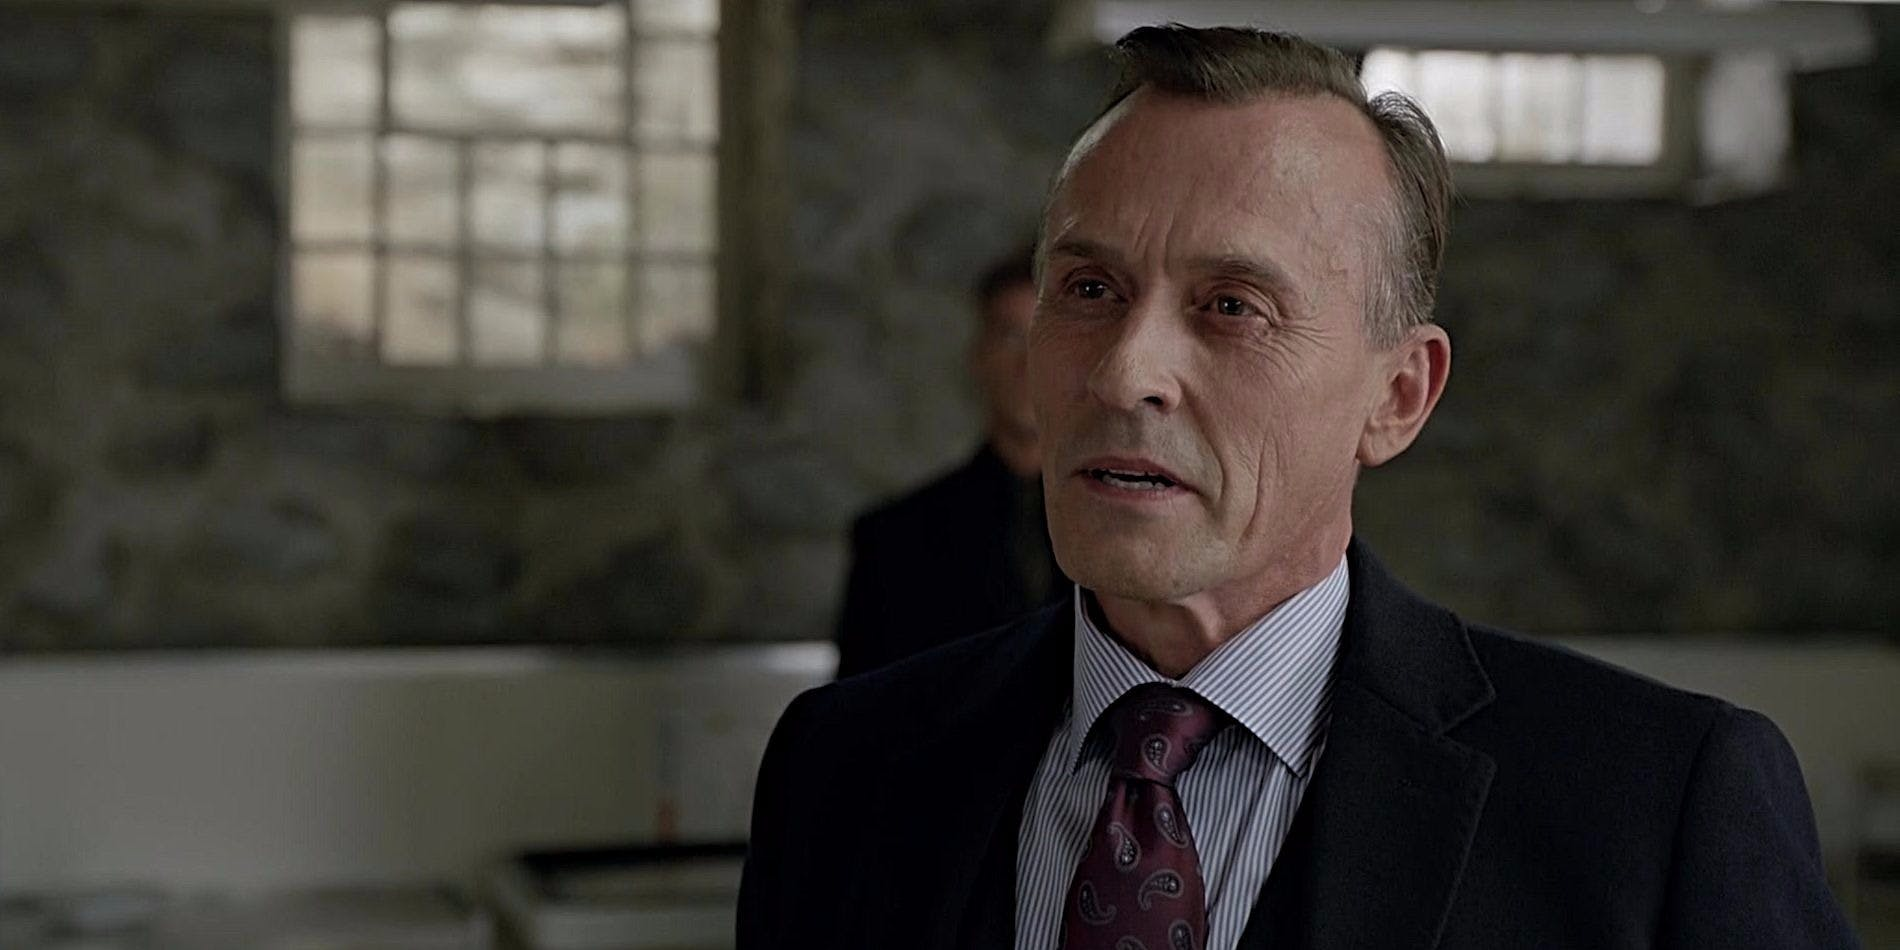 Robert Knepper cast as Blaines father in iZombie